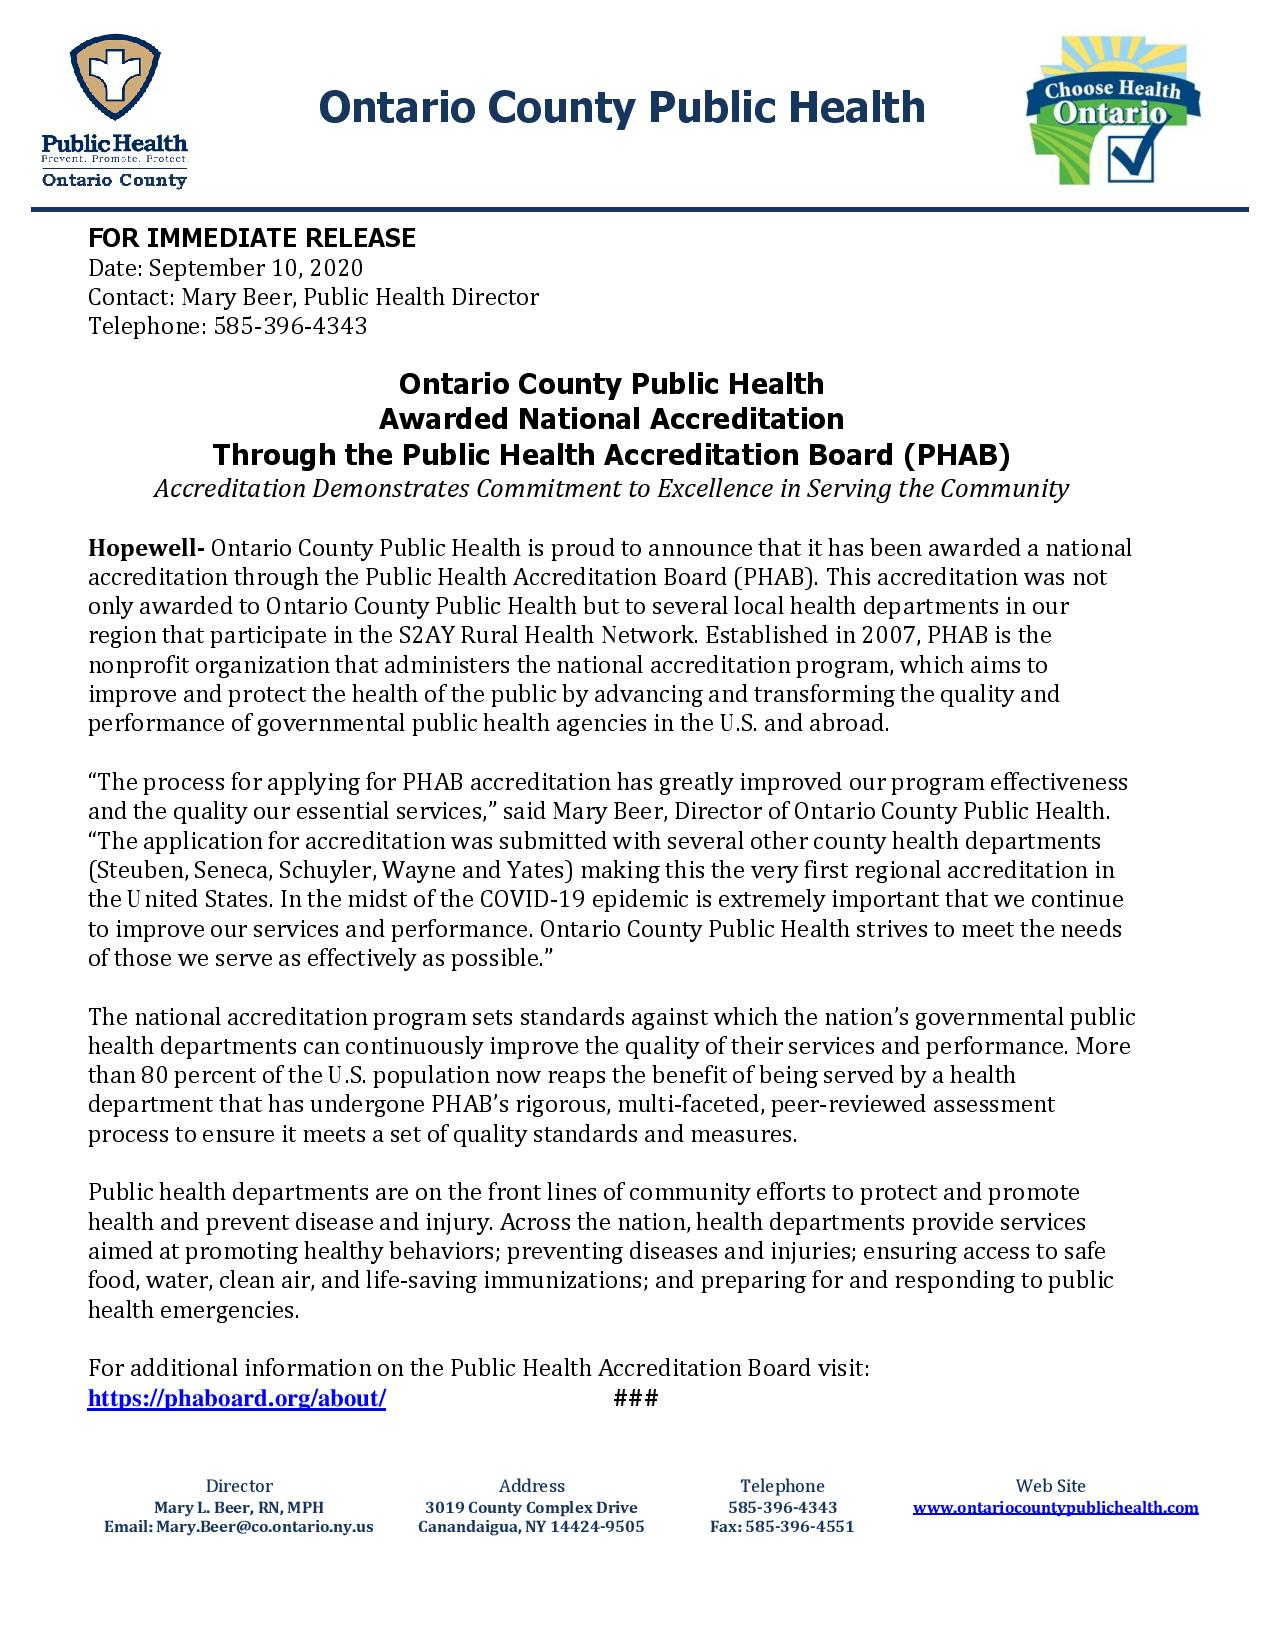 Final Accreditation Press Release 9 10 20-page-001